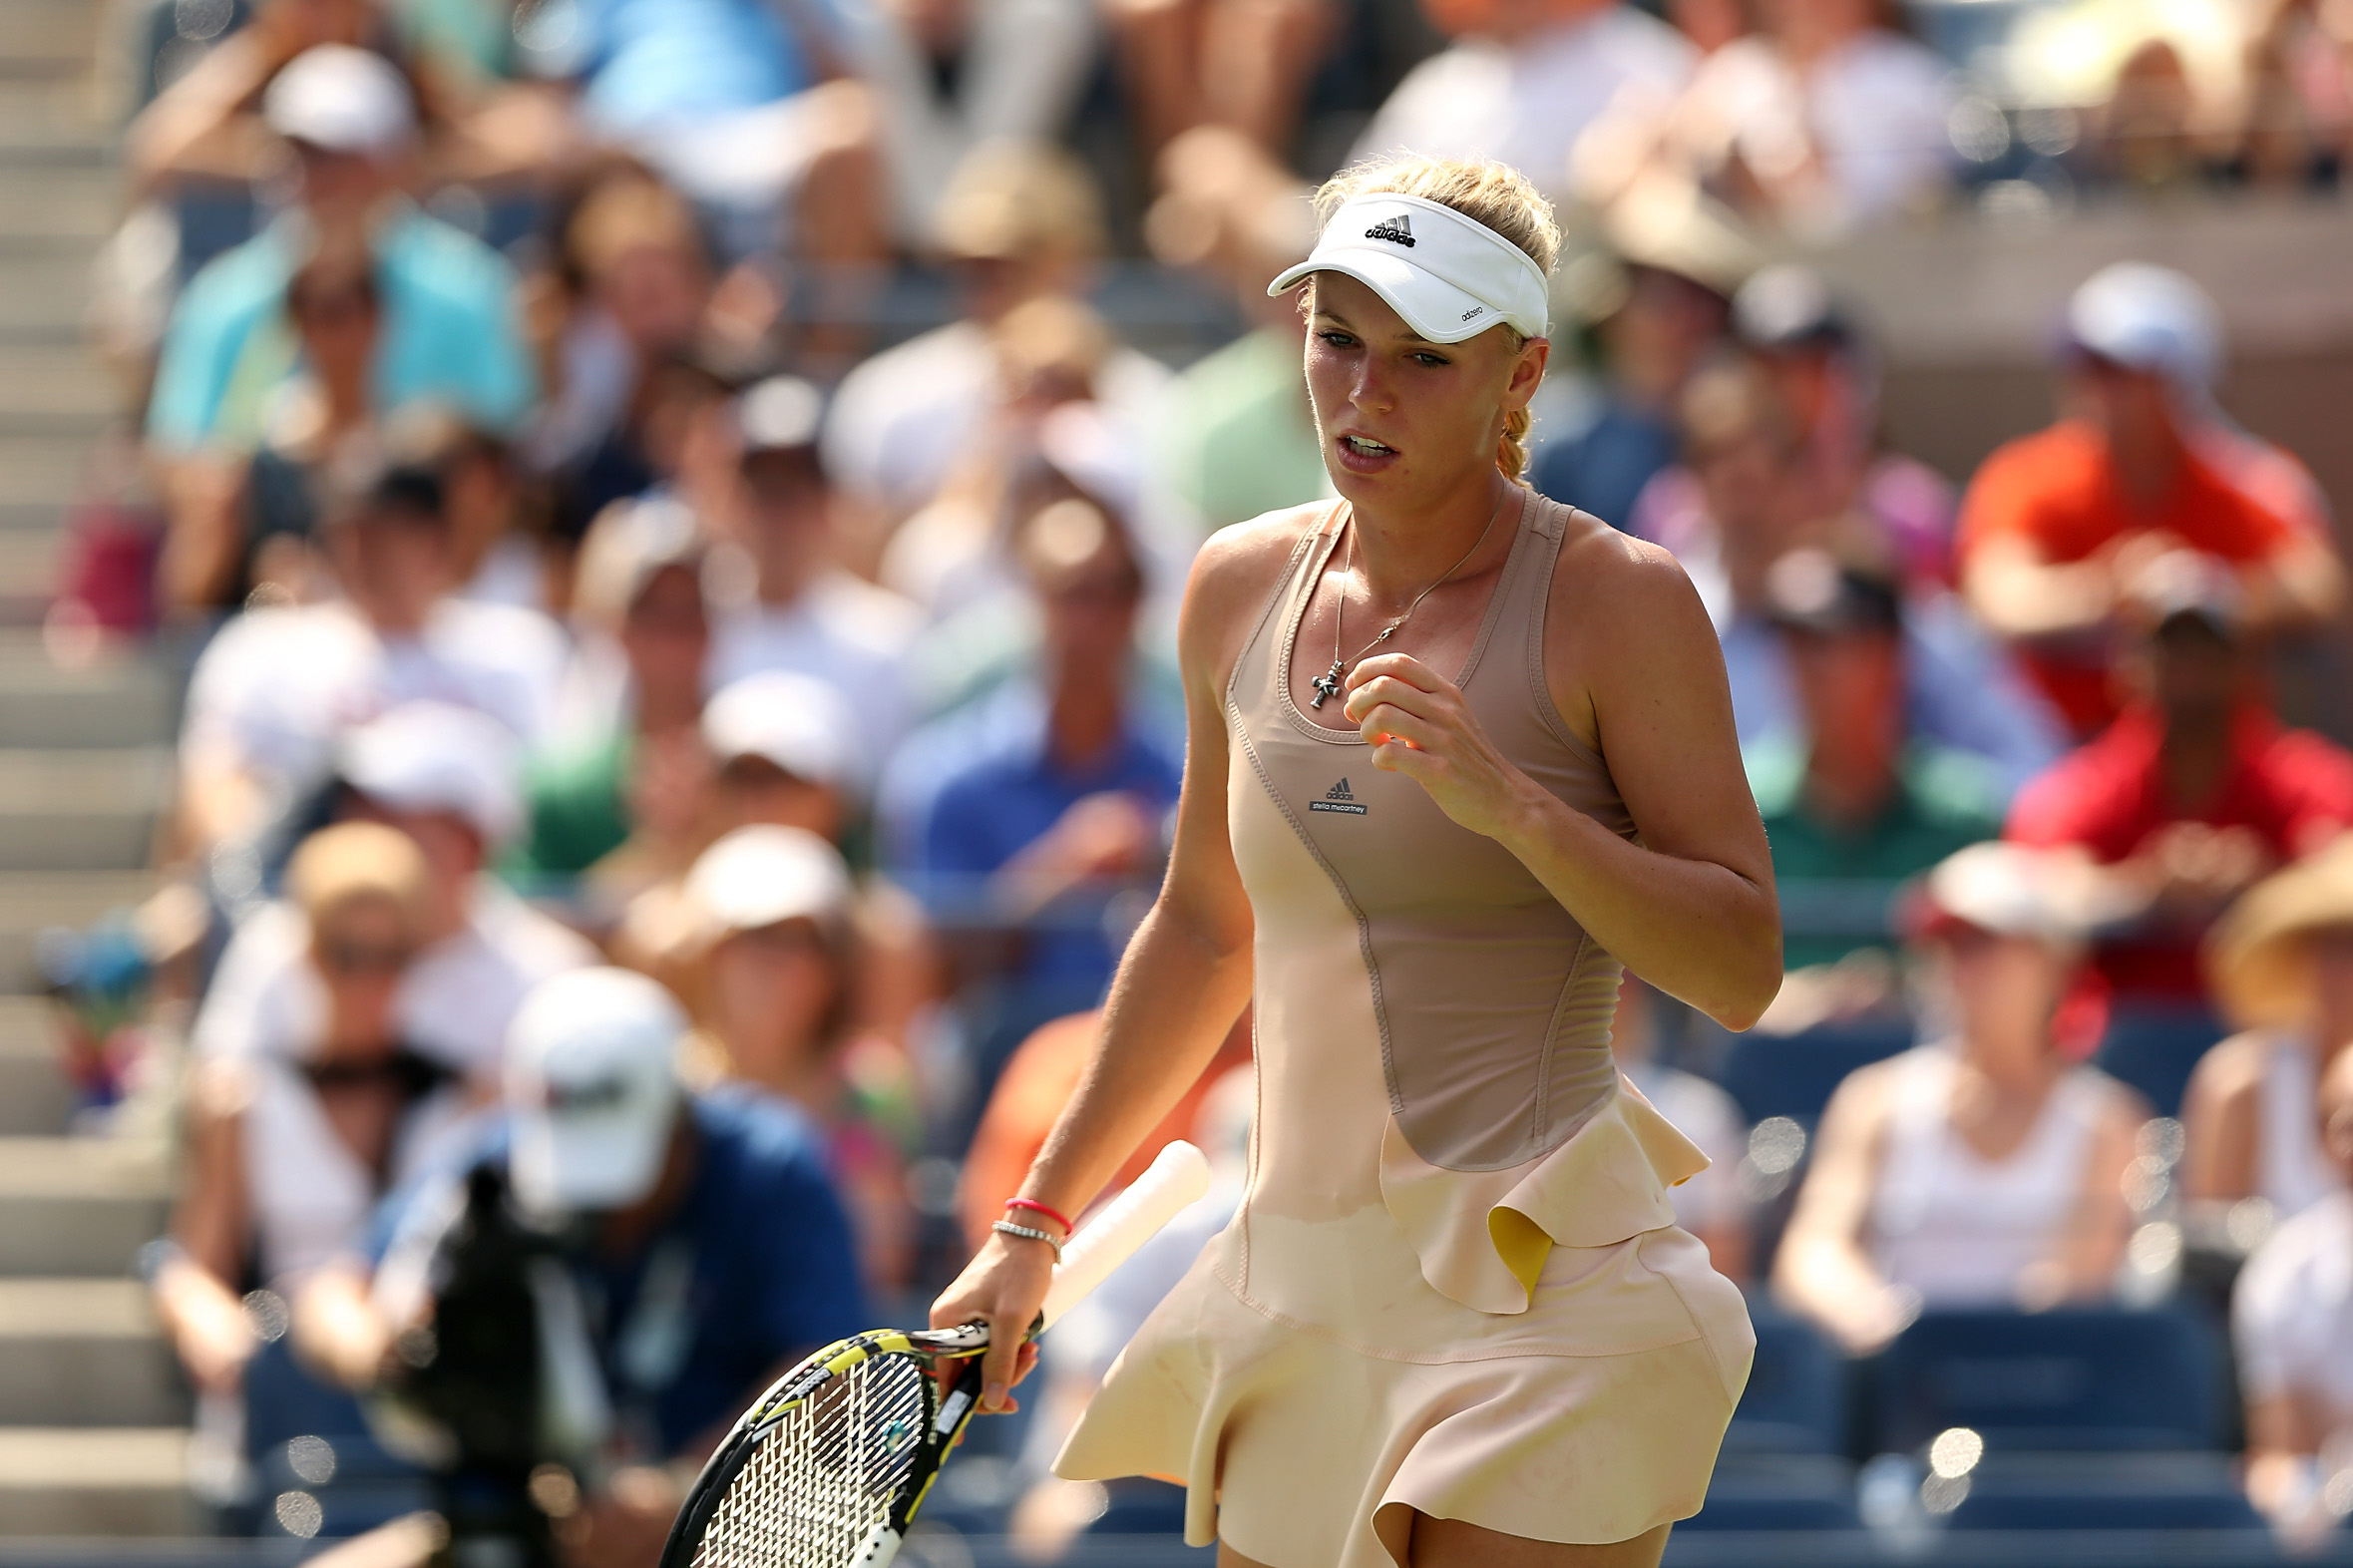 Despite being bogged down by a useless ruffle, Wozniacki finds herself back in a Slam final.